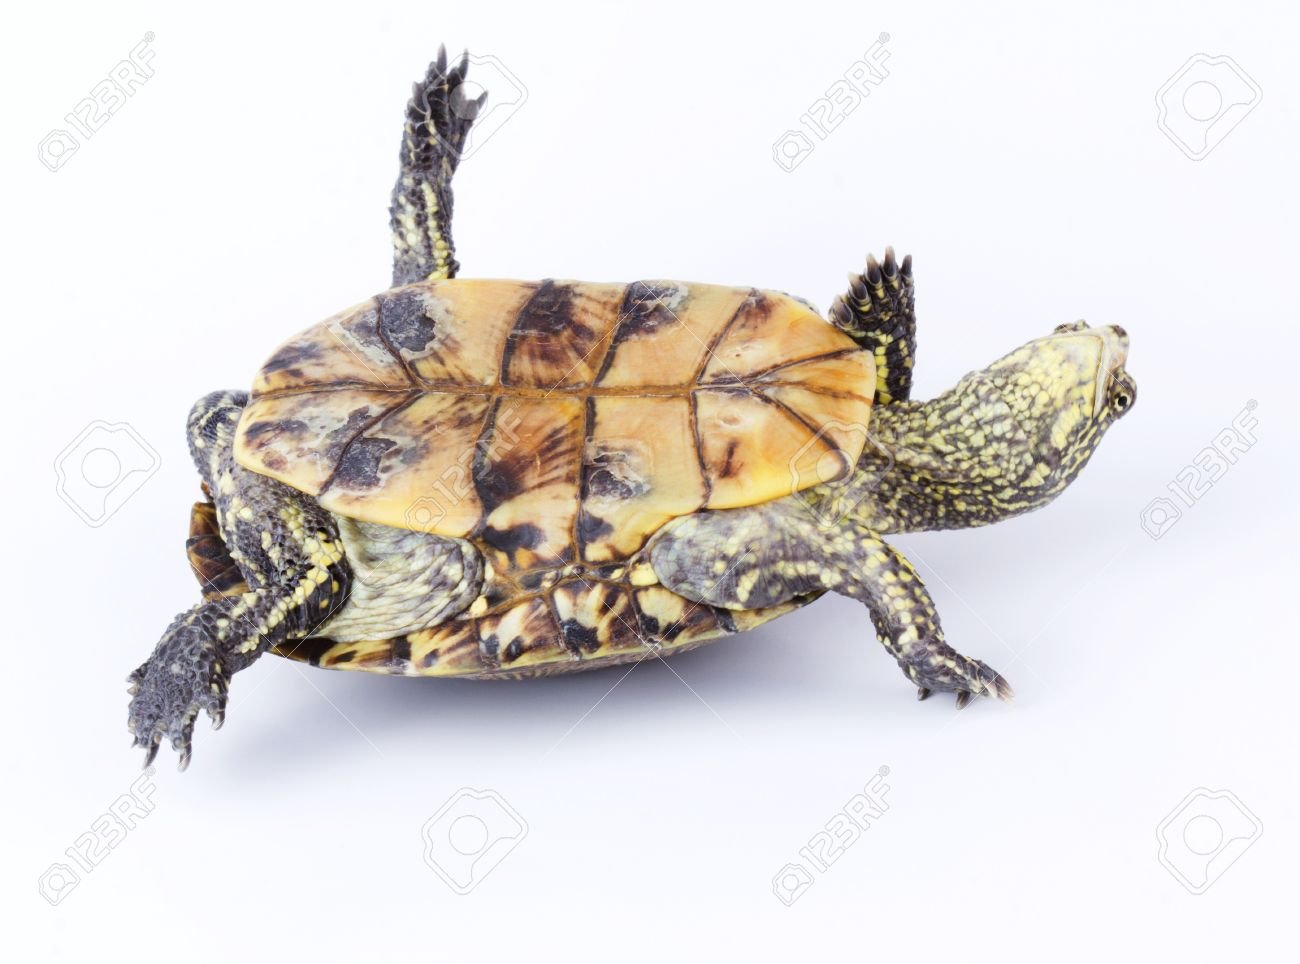 15414644-turtle-upside-down-on-its-back-